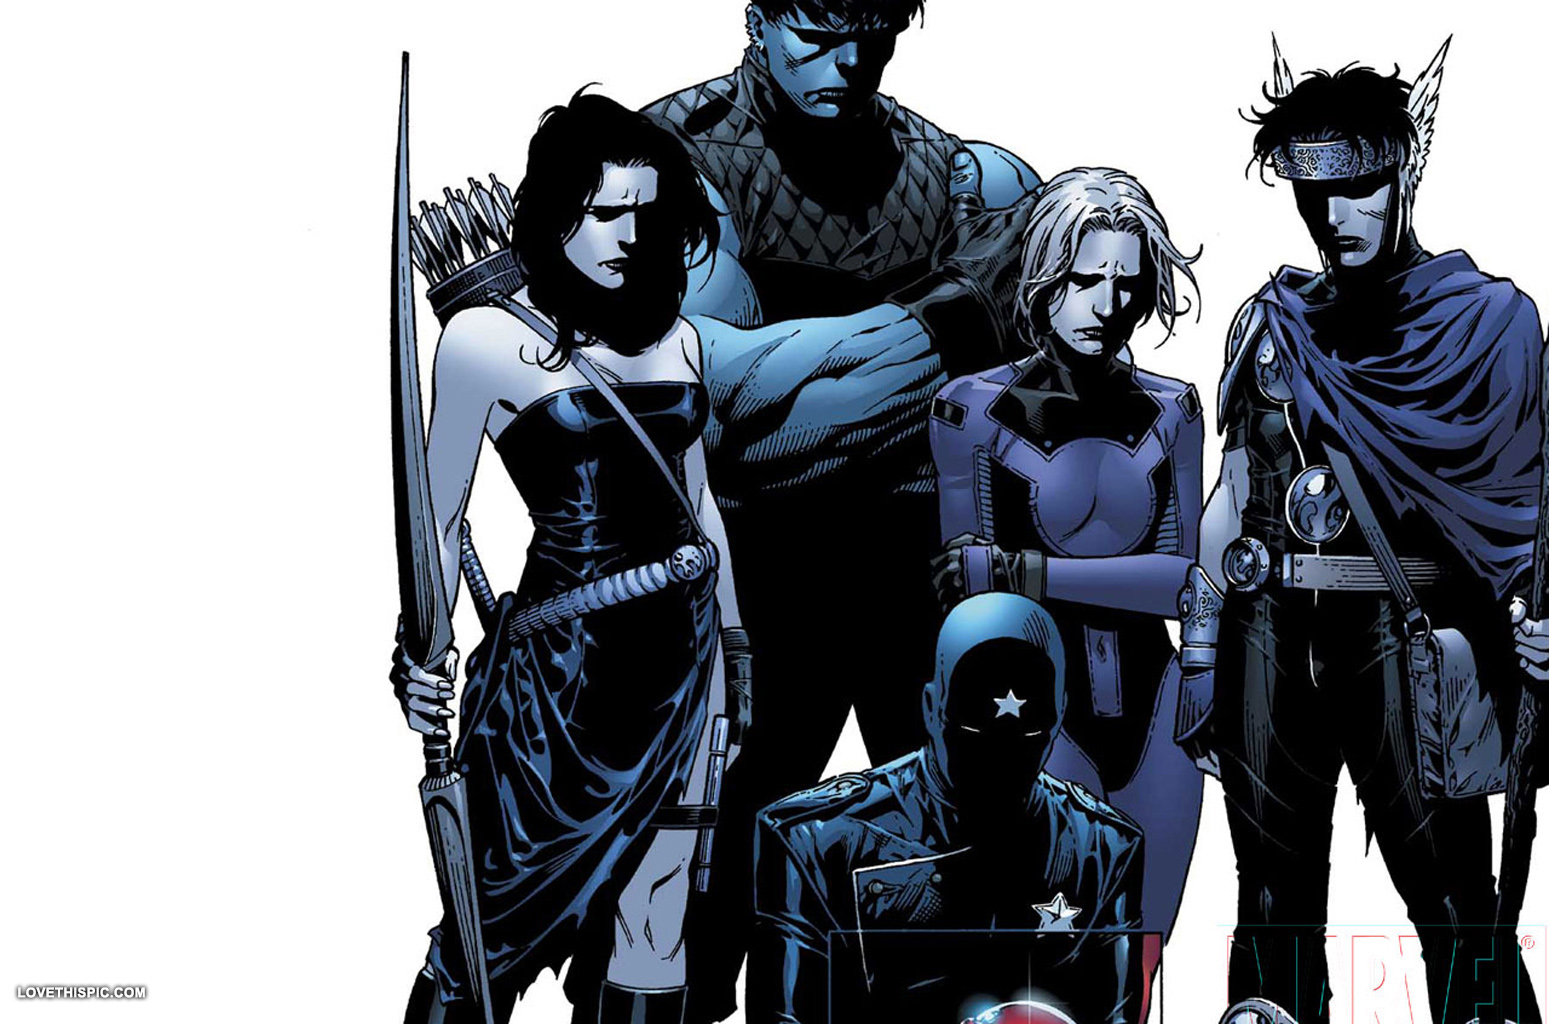 Young avengers pictures photos and images for facebook tumblr